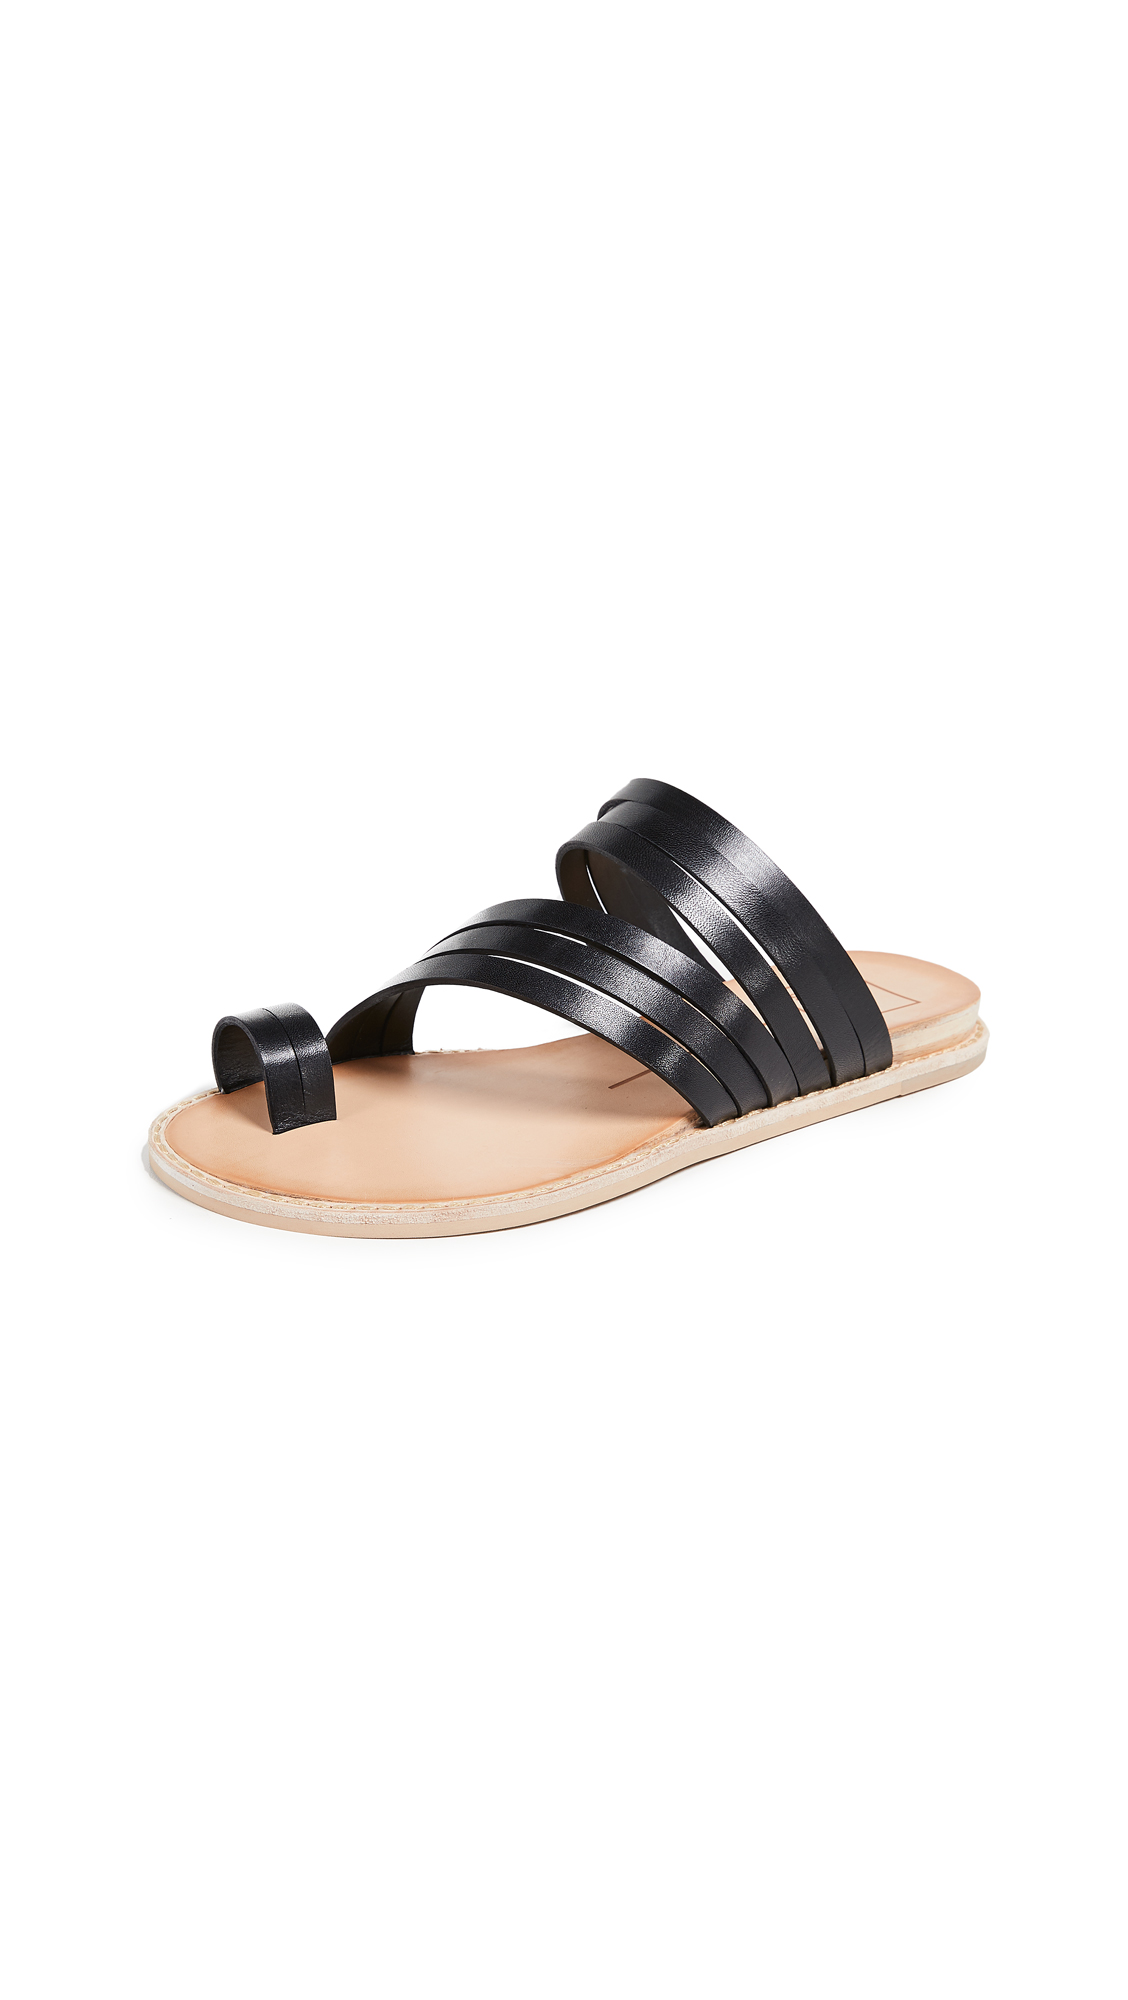 Dolce Vita Nelly Toe Ring Slides - Black